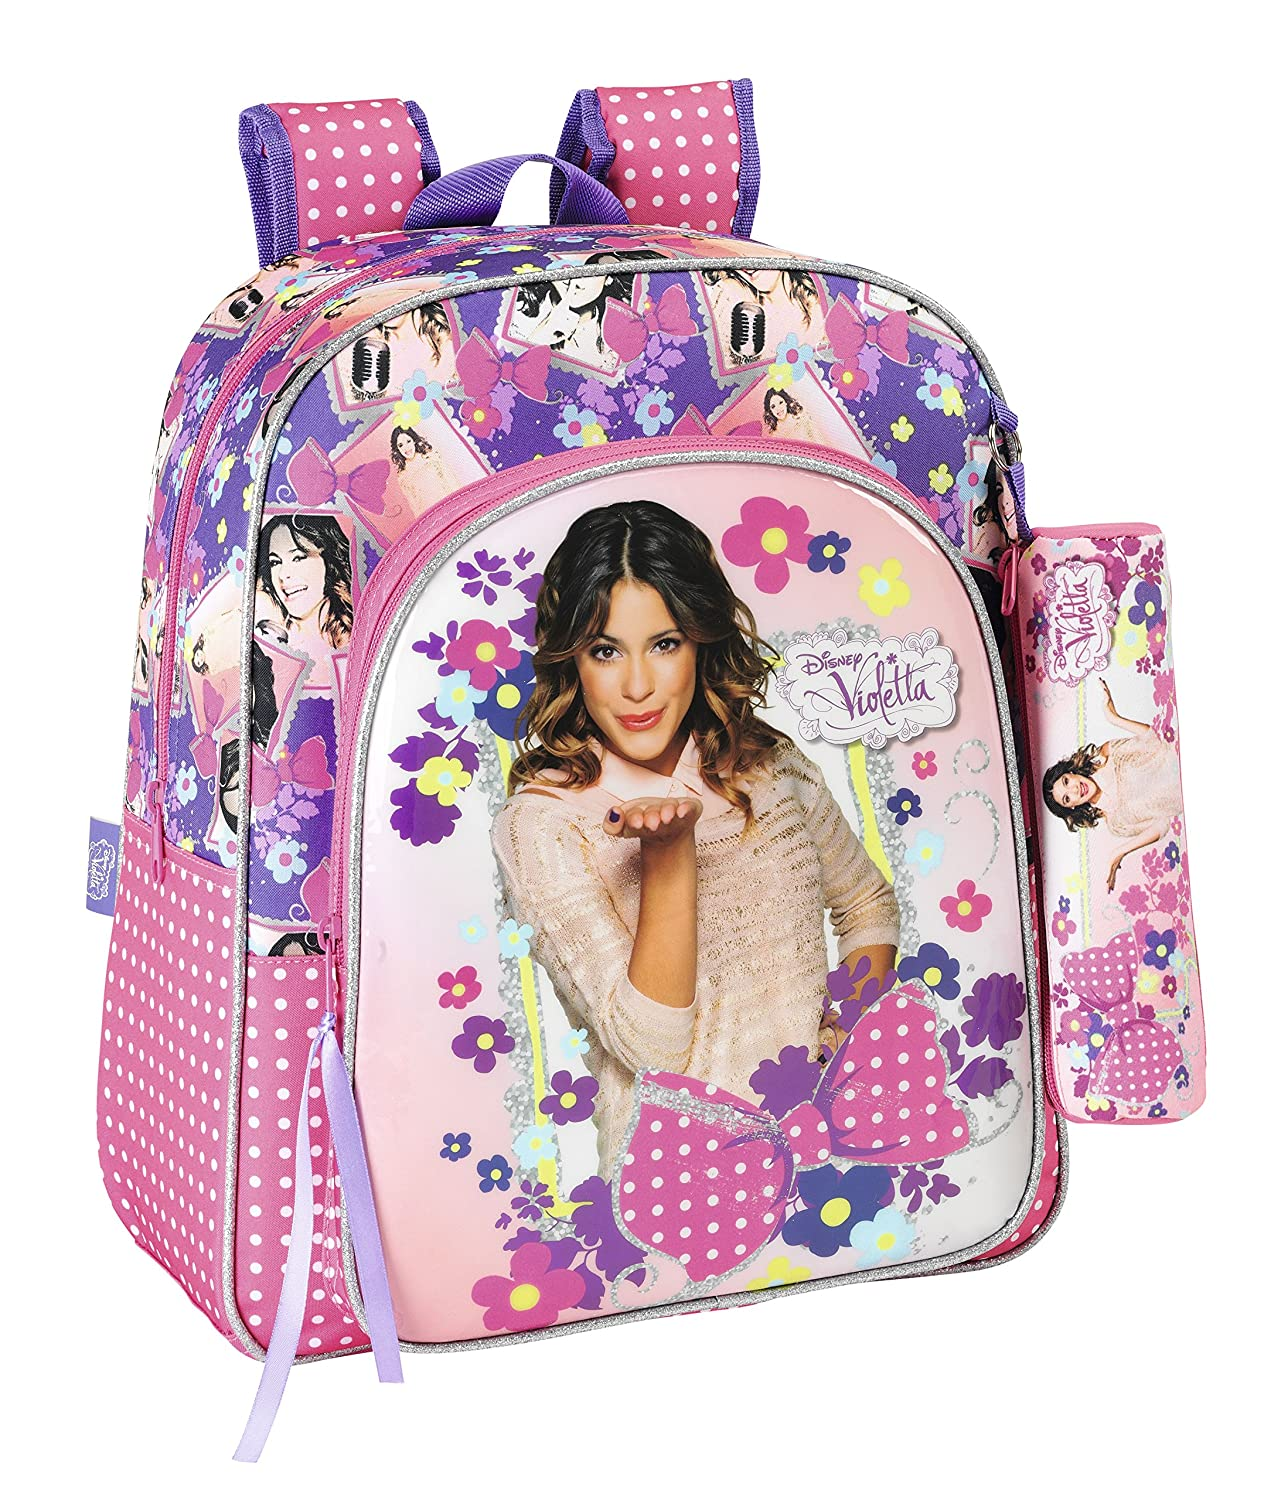 Violetta - Mochila junior adaptable a carro (Safta 611429640): Amazon.es: Ropa y accesorios